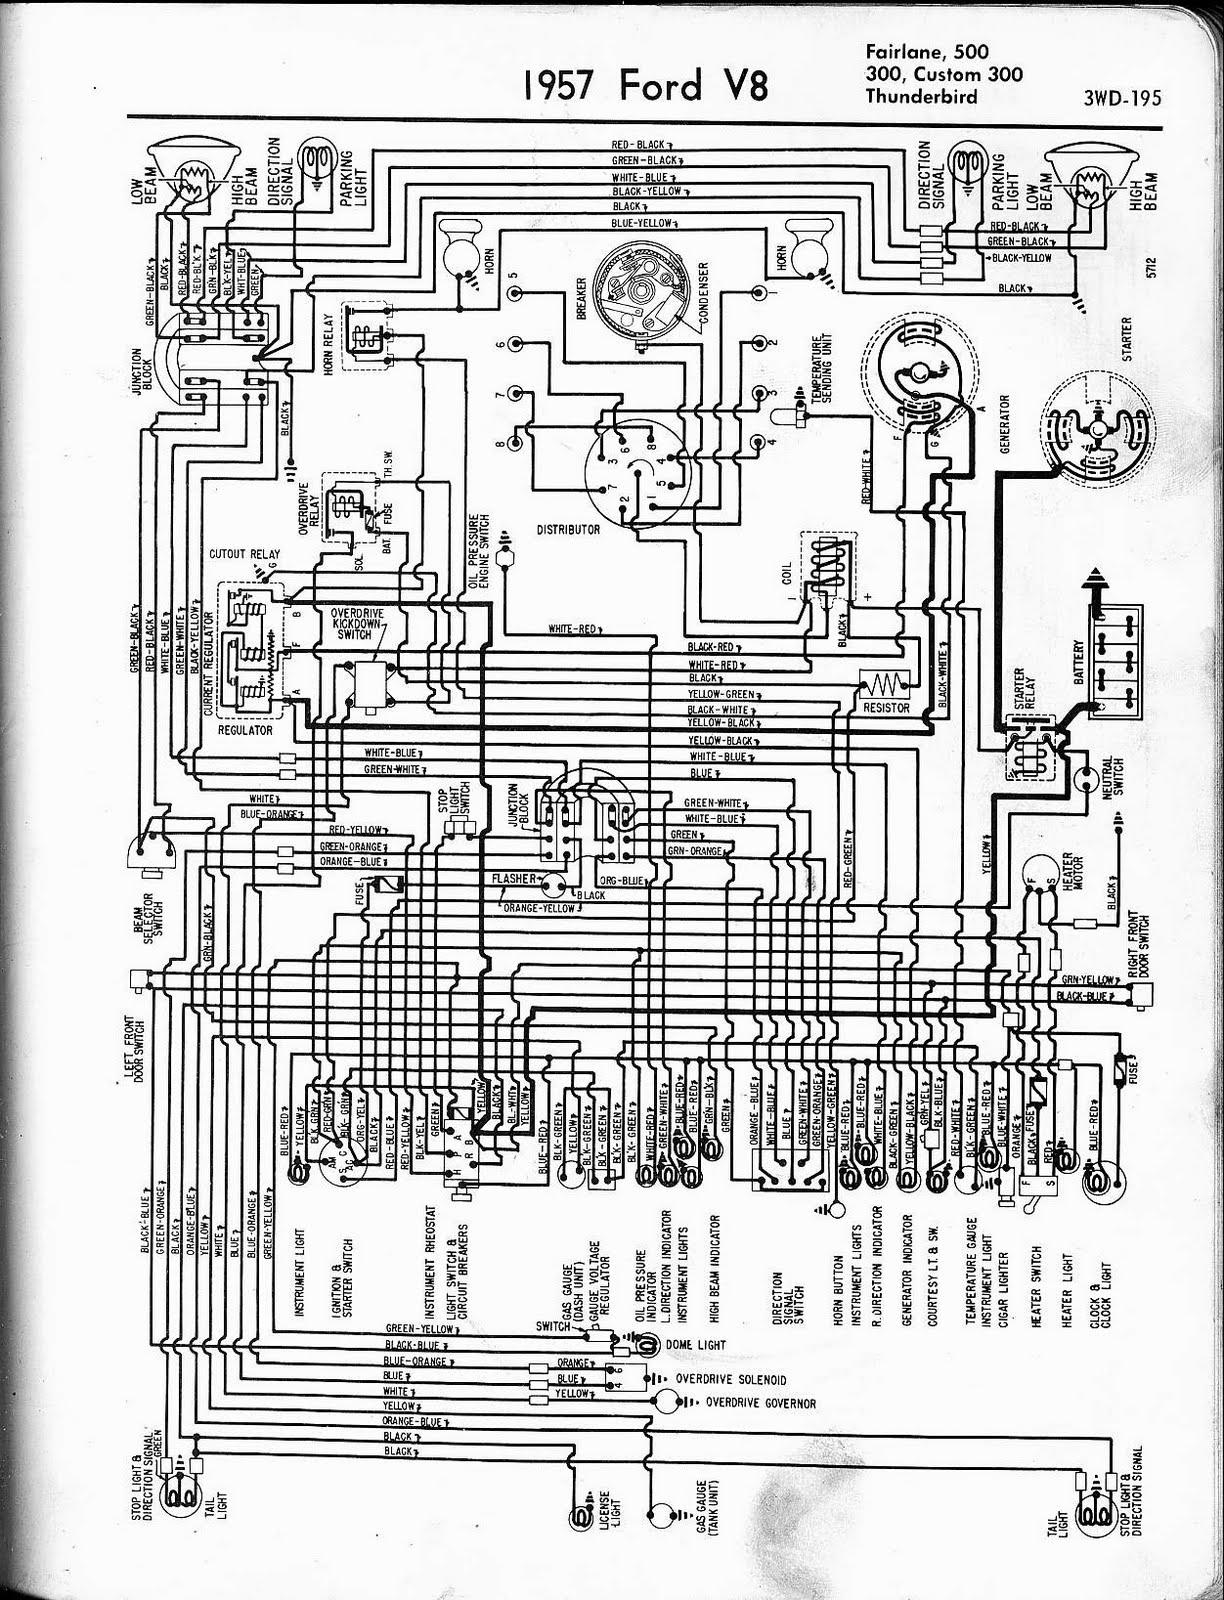 1957 Ford Fuse Box Location Wiring Diagram Schematics 1956 Chevy Bel Air 2006 Crown Victoria Library Focus